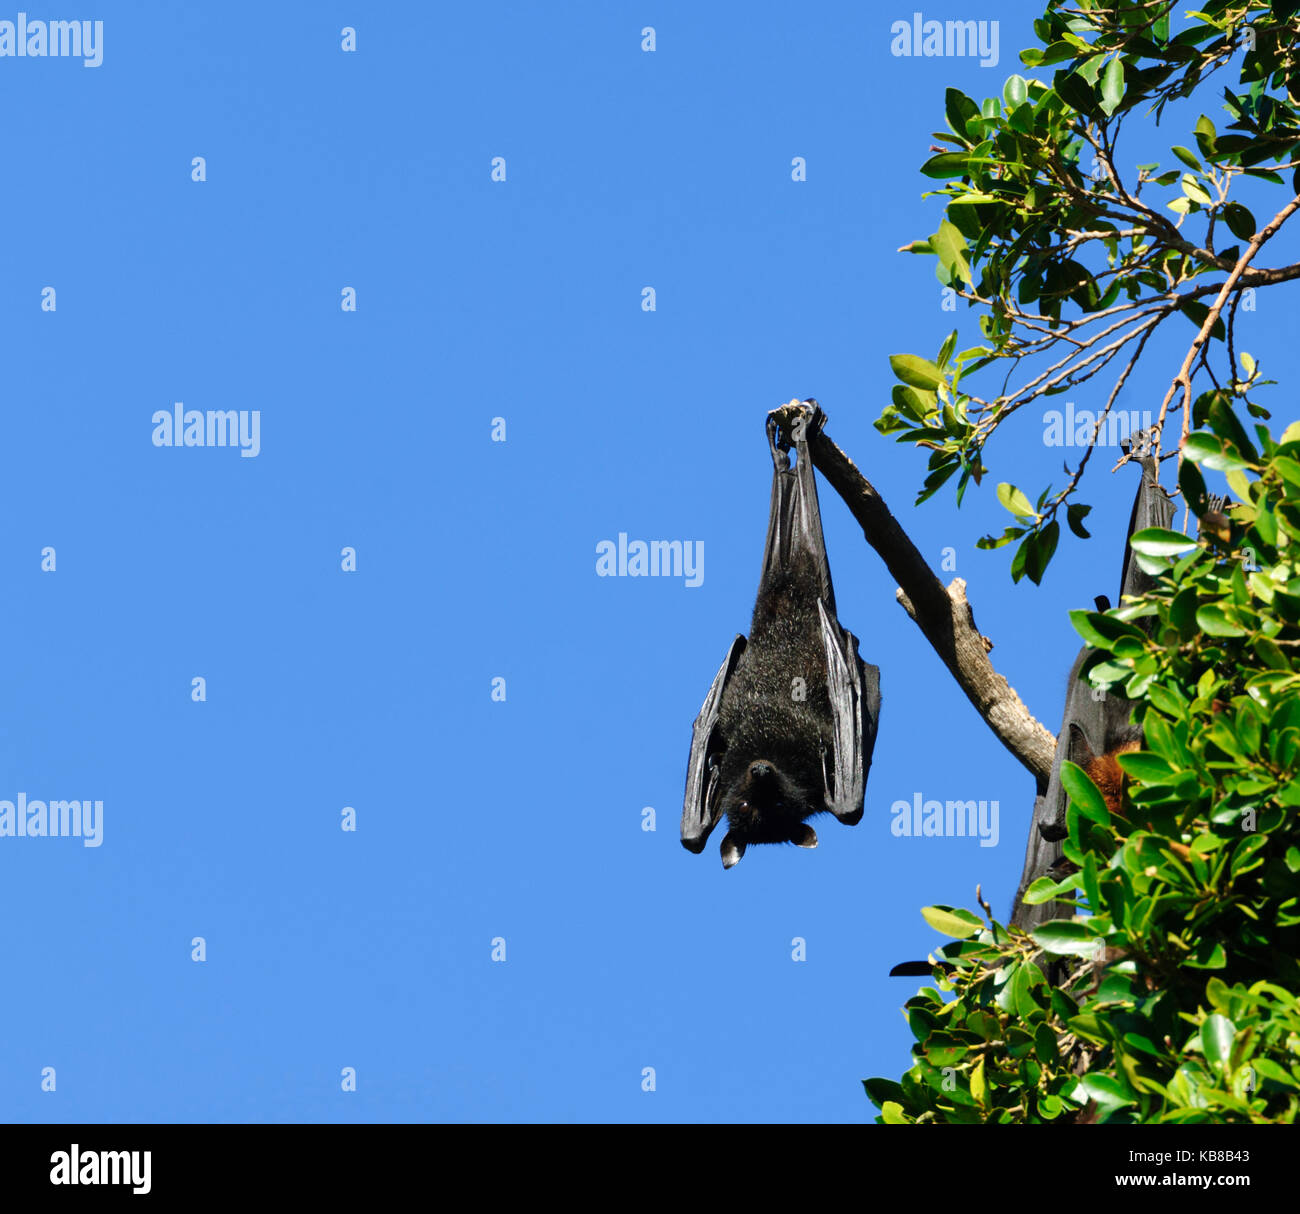 A Black Flying Fox (Pteropus alecto) roosting in Lissner Park in Charters Towers, Queensland, QLD, Australia Stock Photo